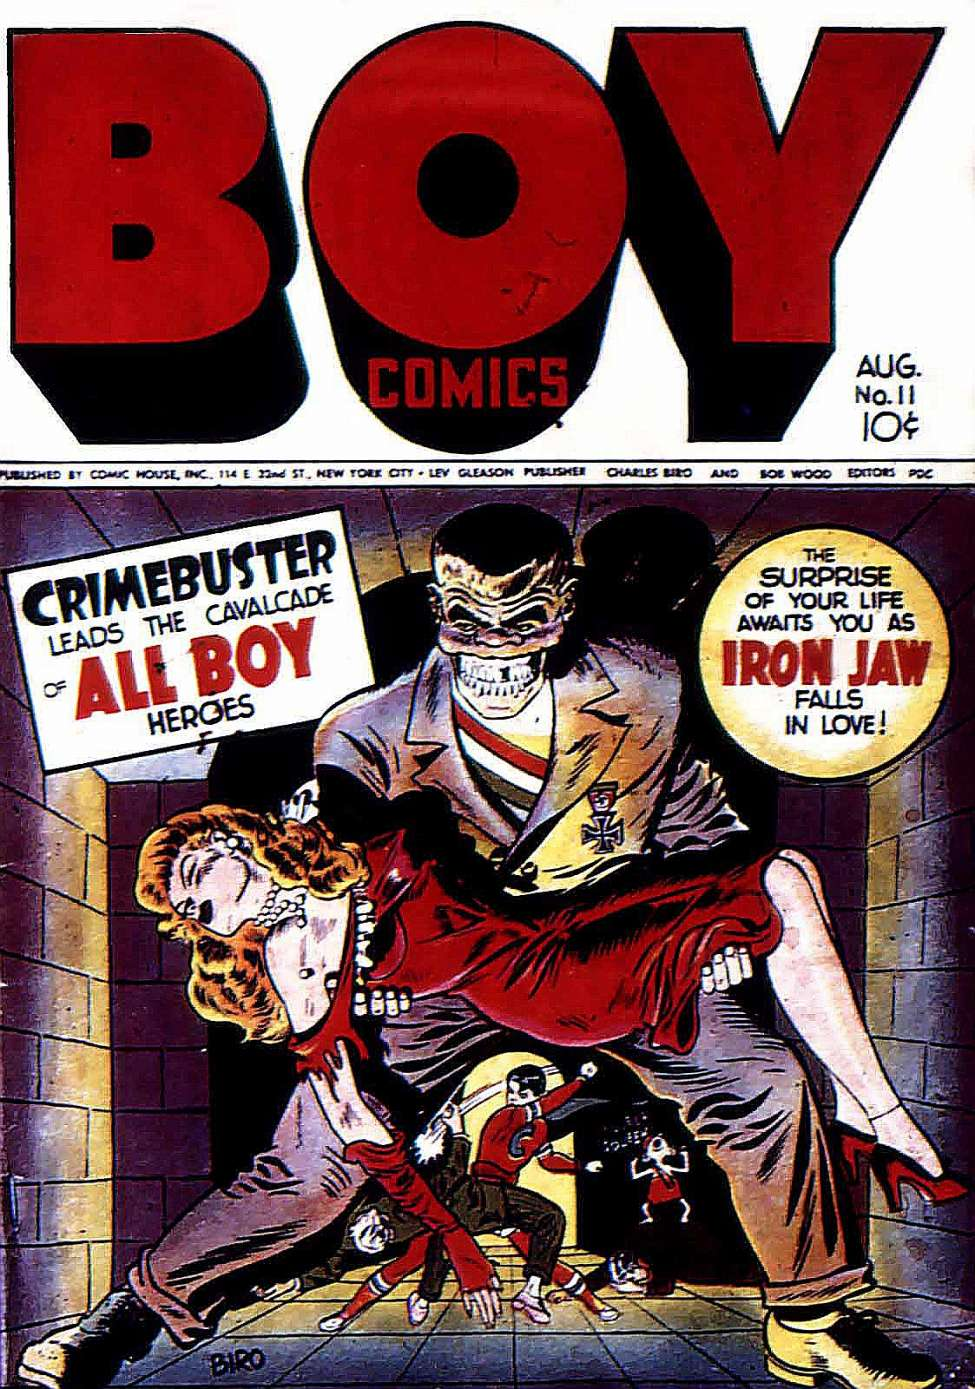 Boy Comics #11, Lev Gleason